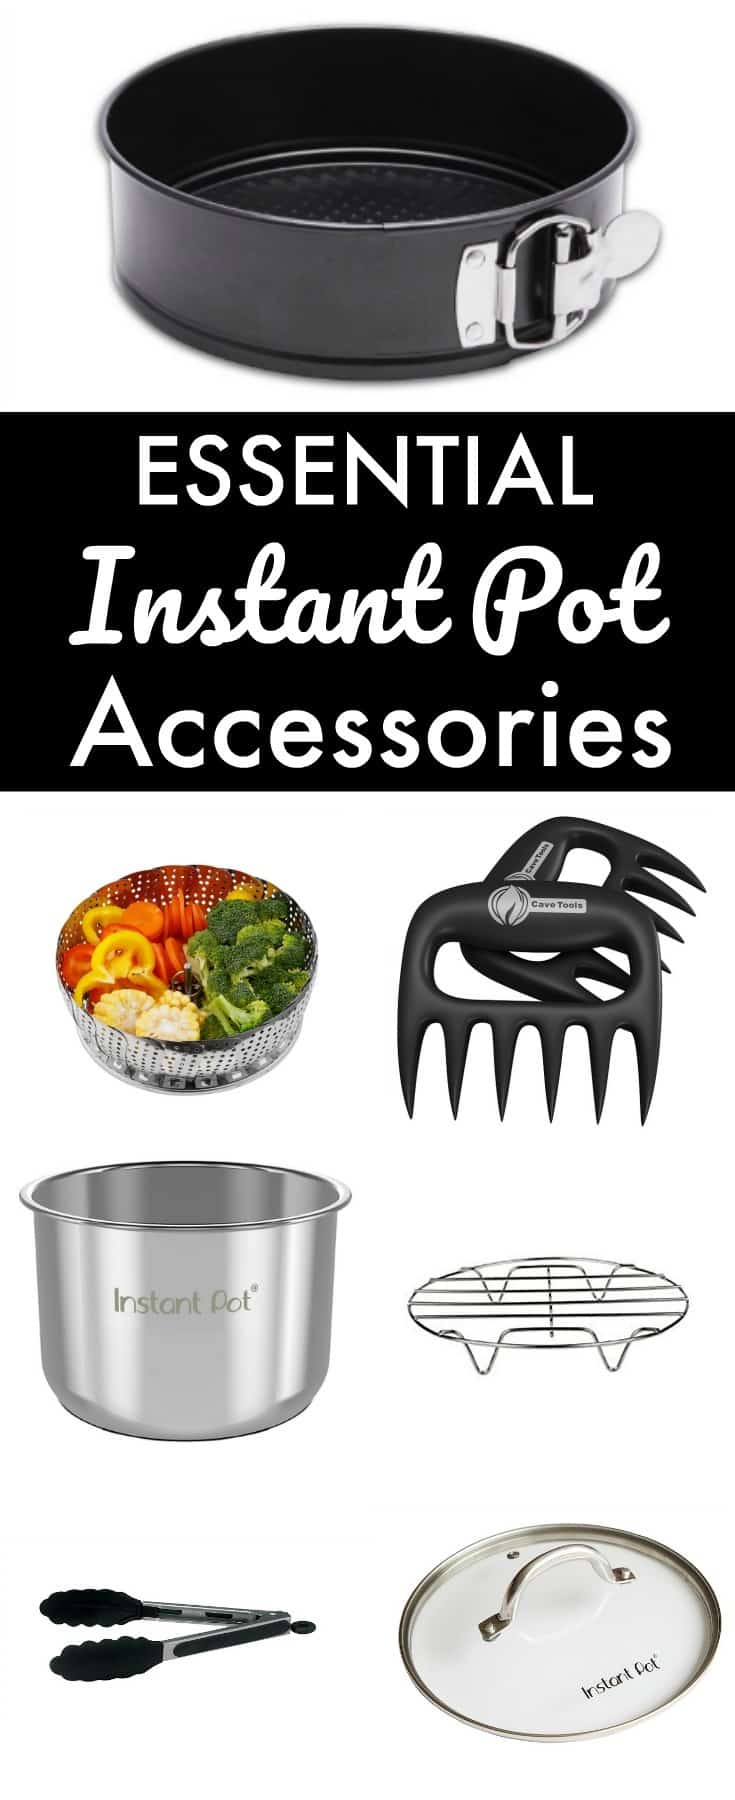 Instant Pots are amazing appliances on their own, but these essential Instant Pot accessories will open up a whole new world of ease and variety! #instantpot #pressurecooker